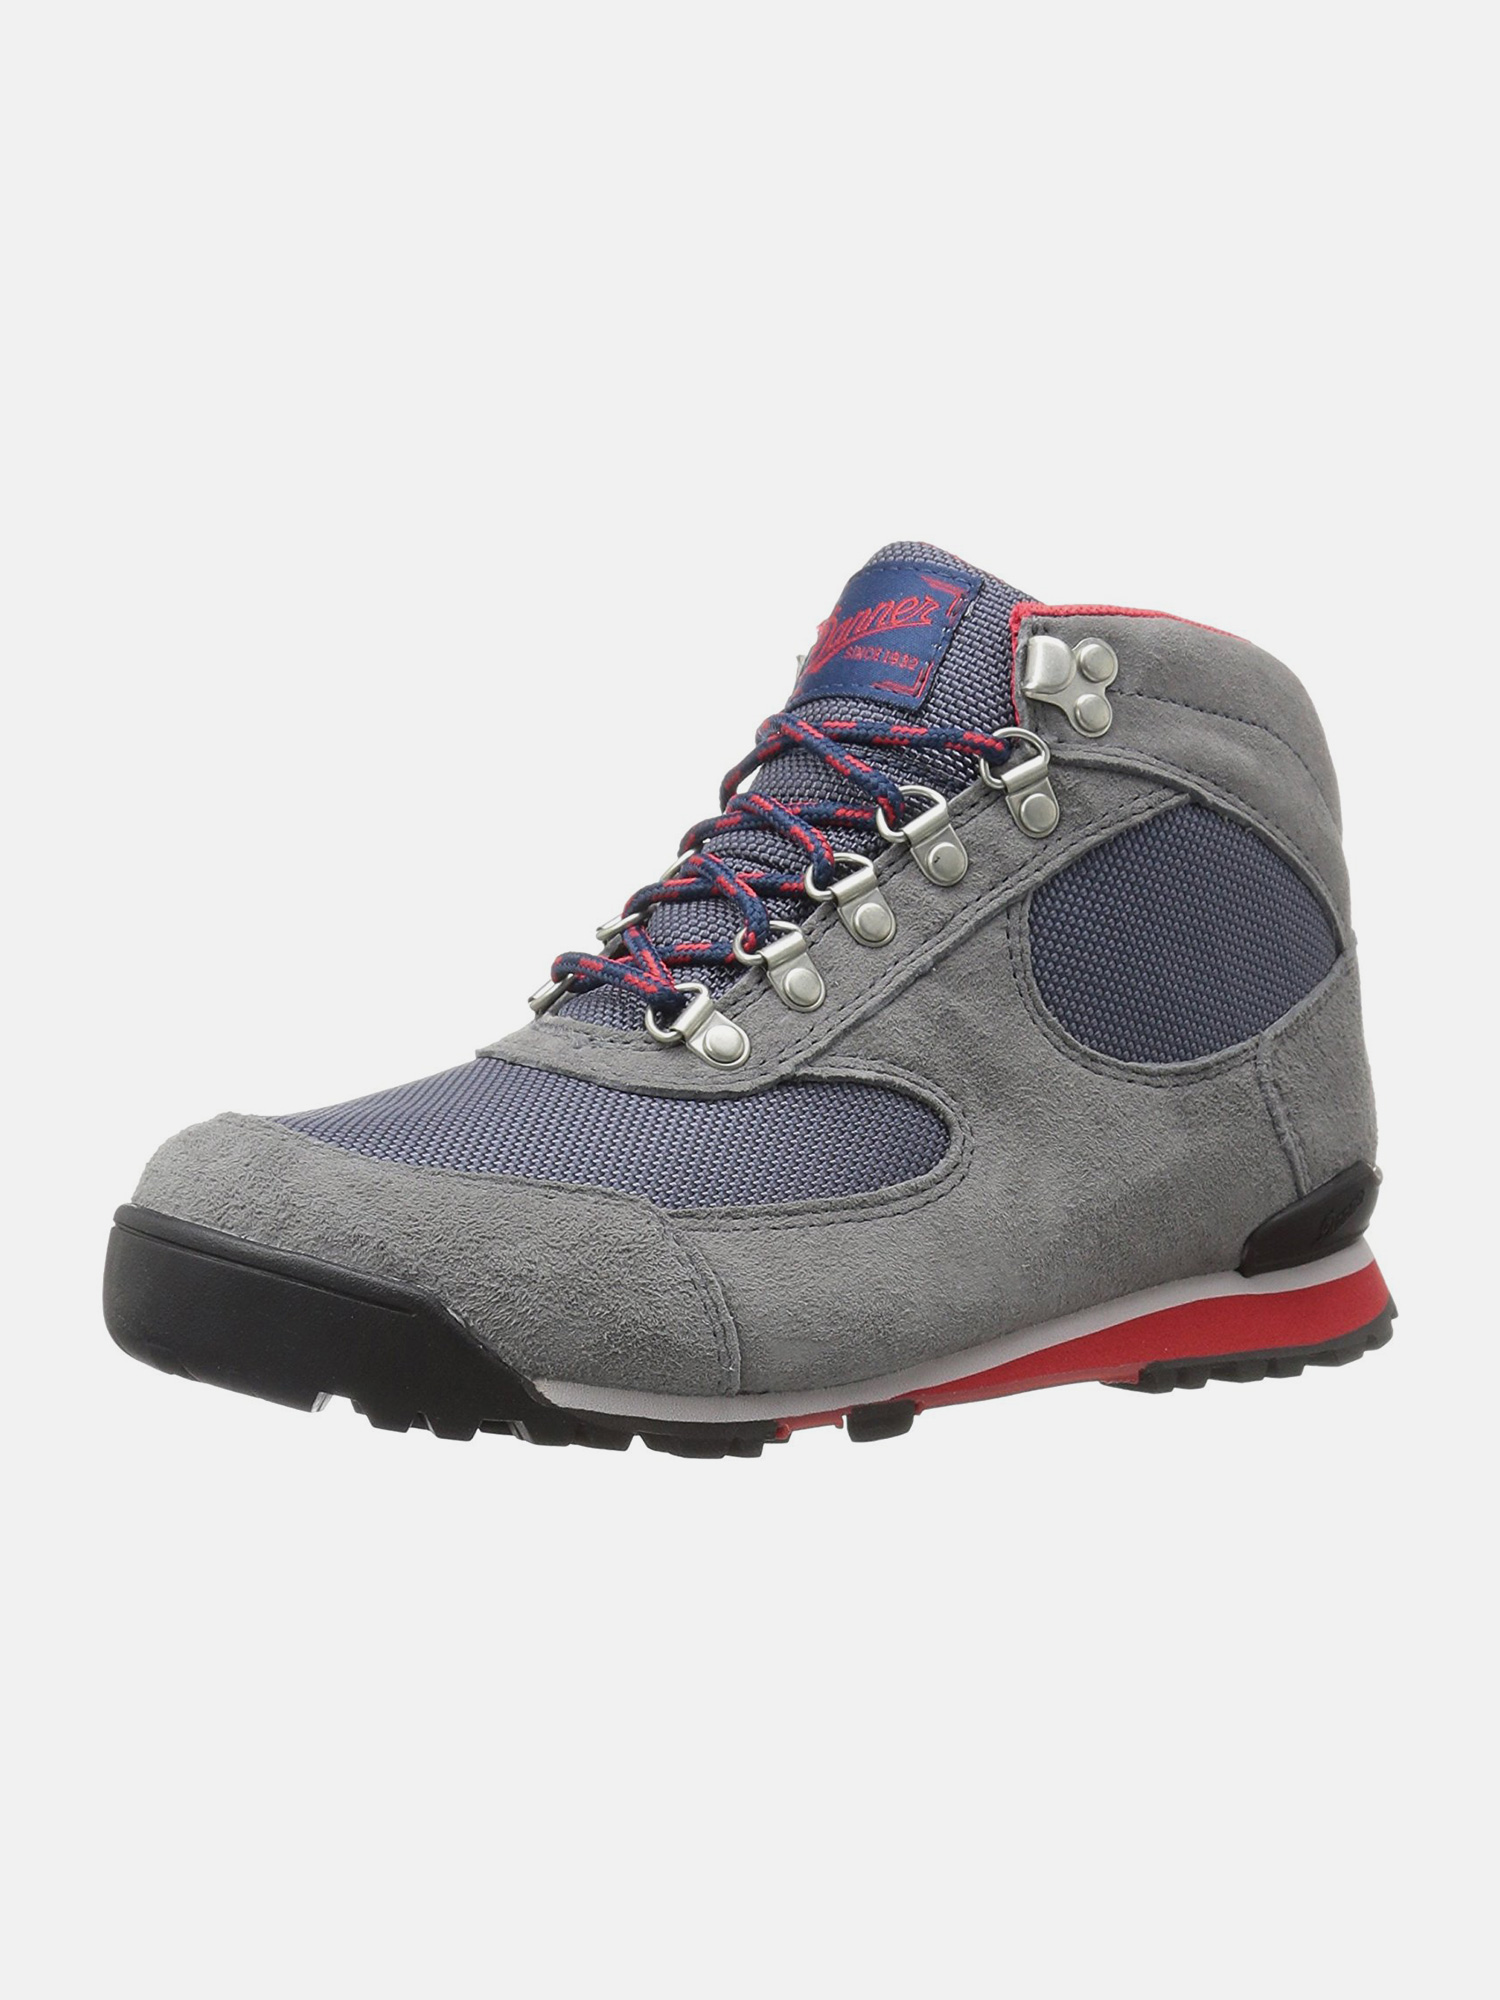 Danner Moderate Hiking Boots - $160